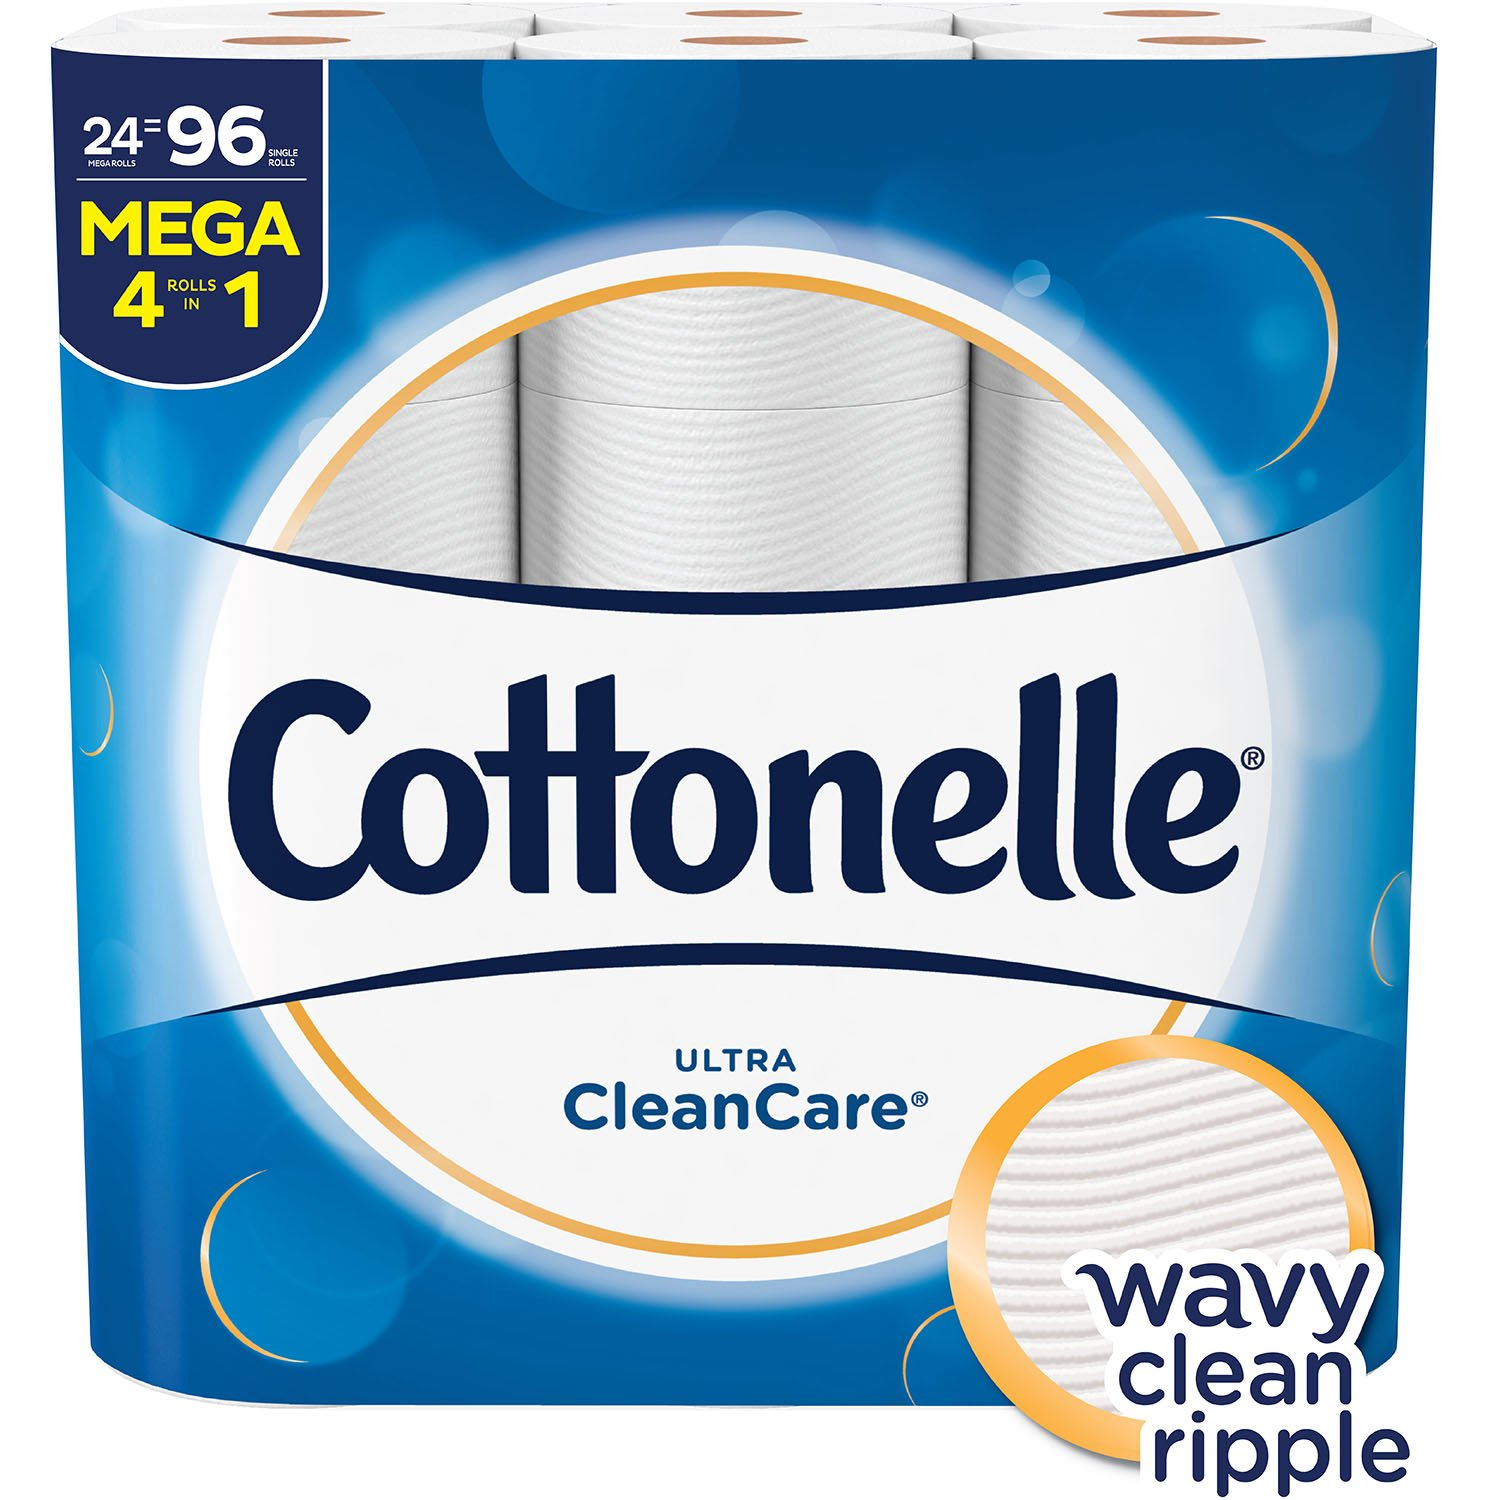 Cottonelle Ultra CleanCare Toilet Paper, Strong Bath Tissue, Septic-Safe, 24 Mega Rolls by Cottonelle